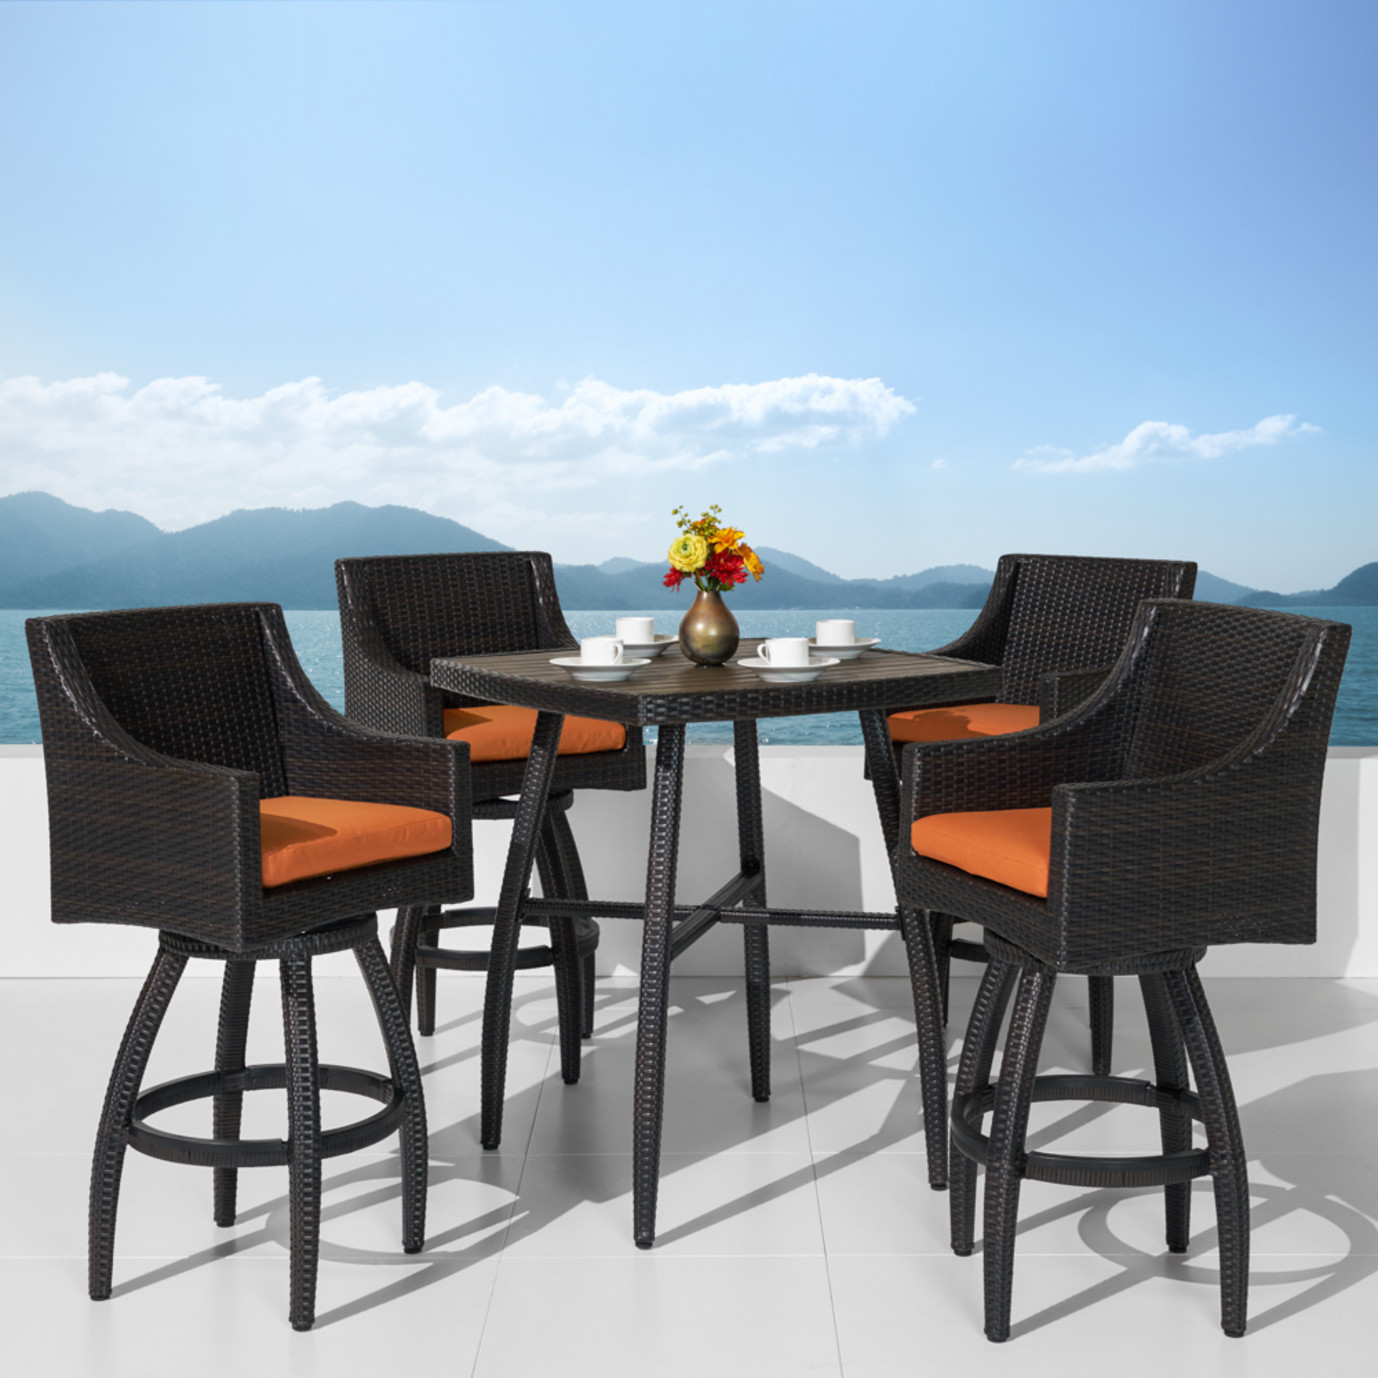 Deco™ 5 Piece Barstool Set - Tikka Orange